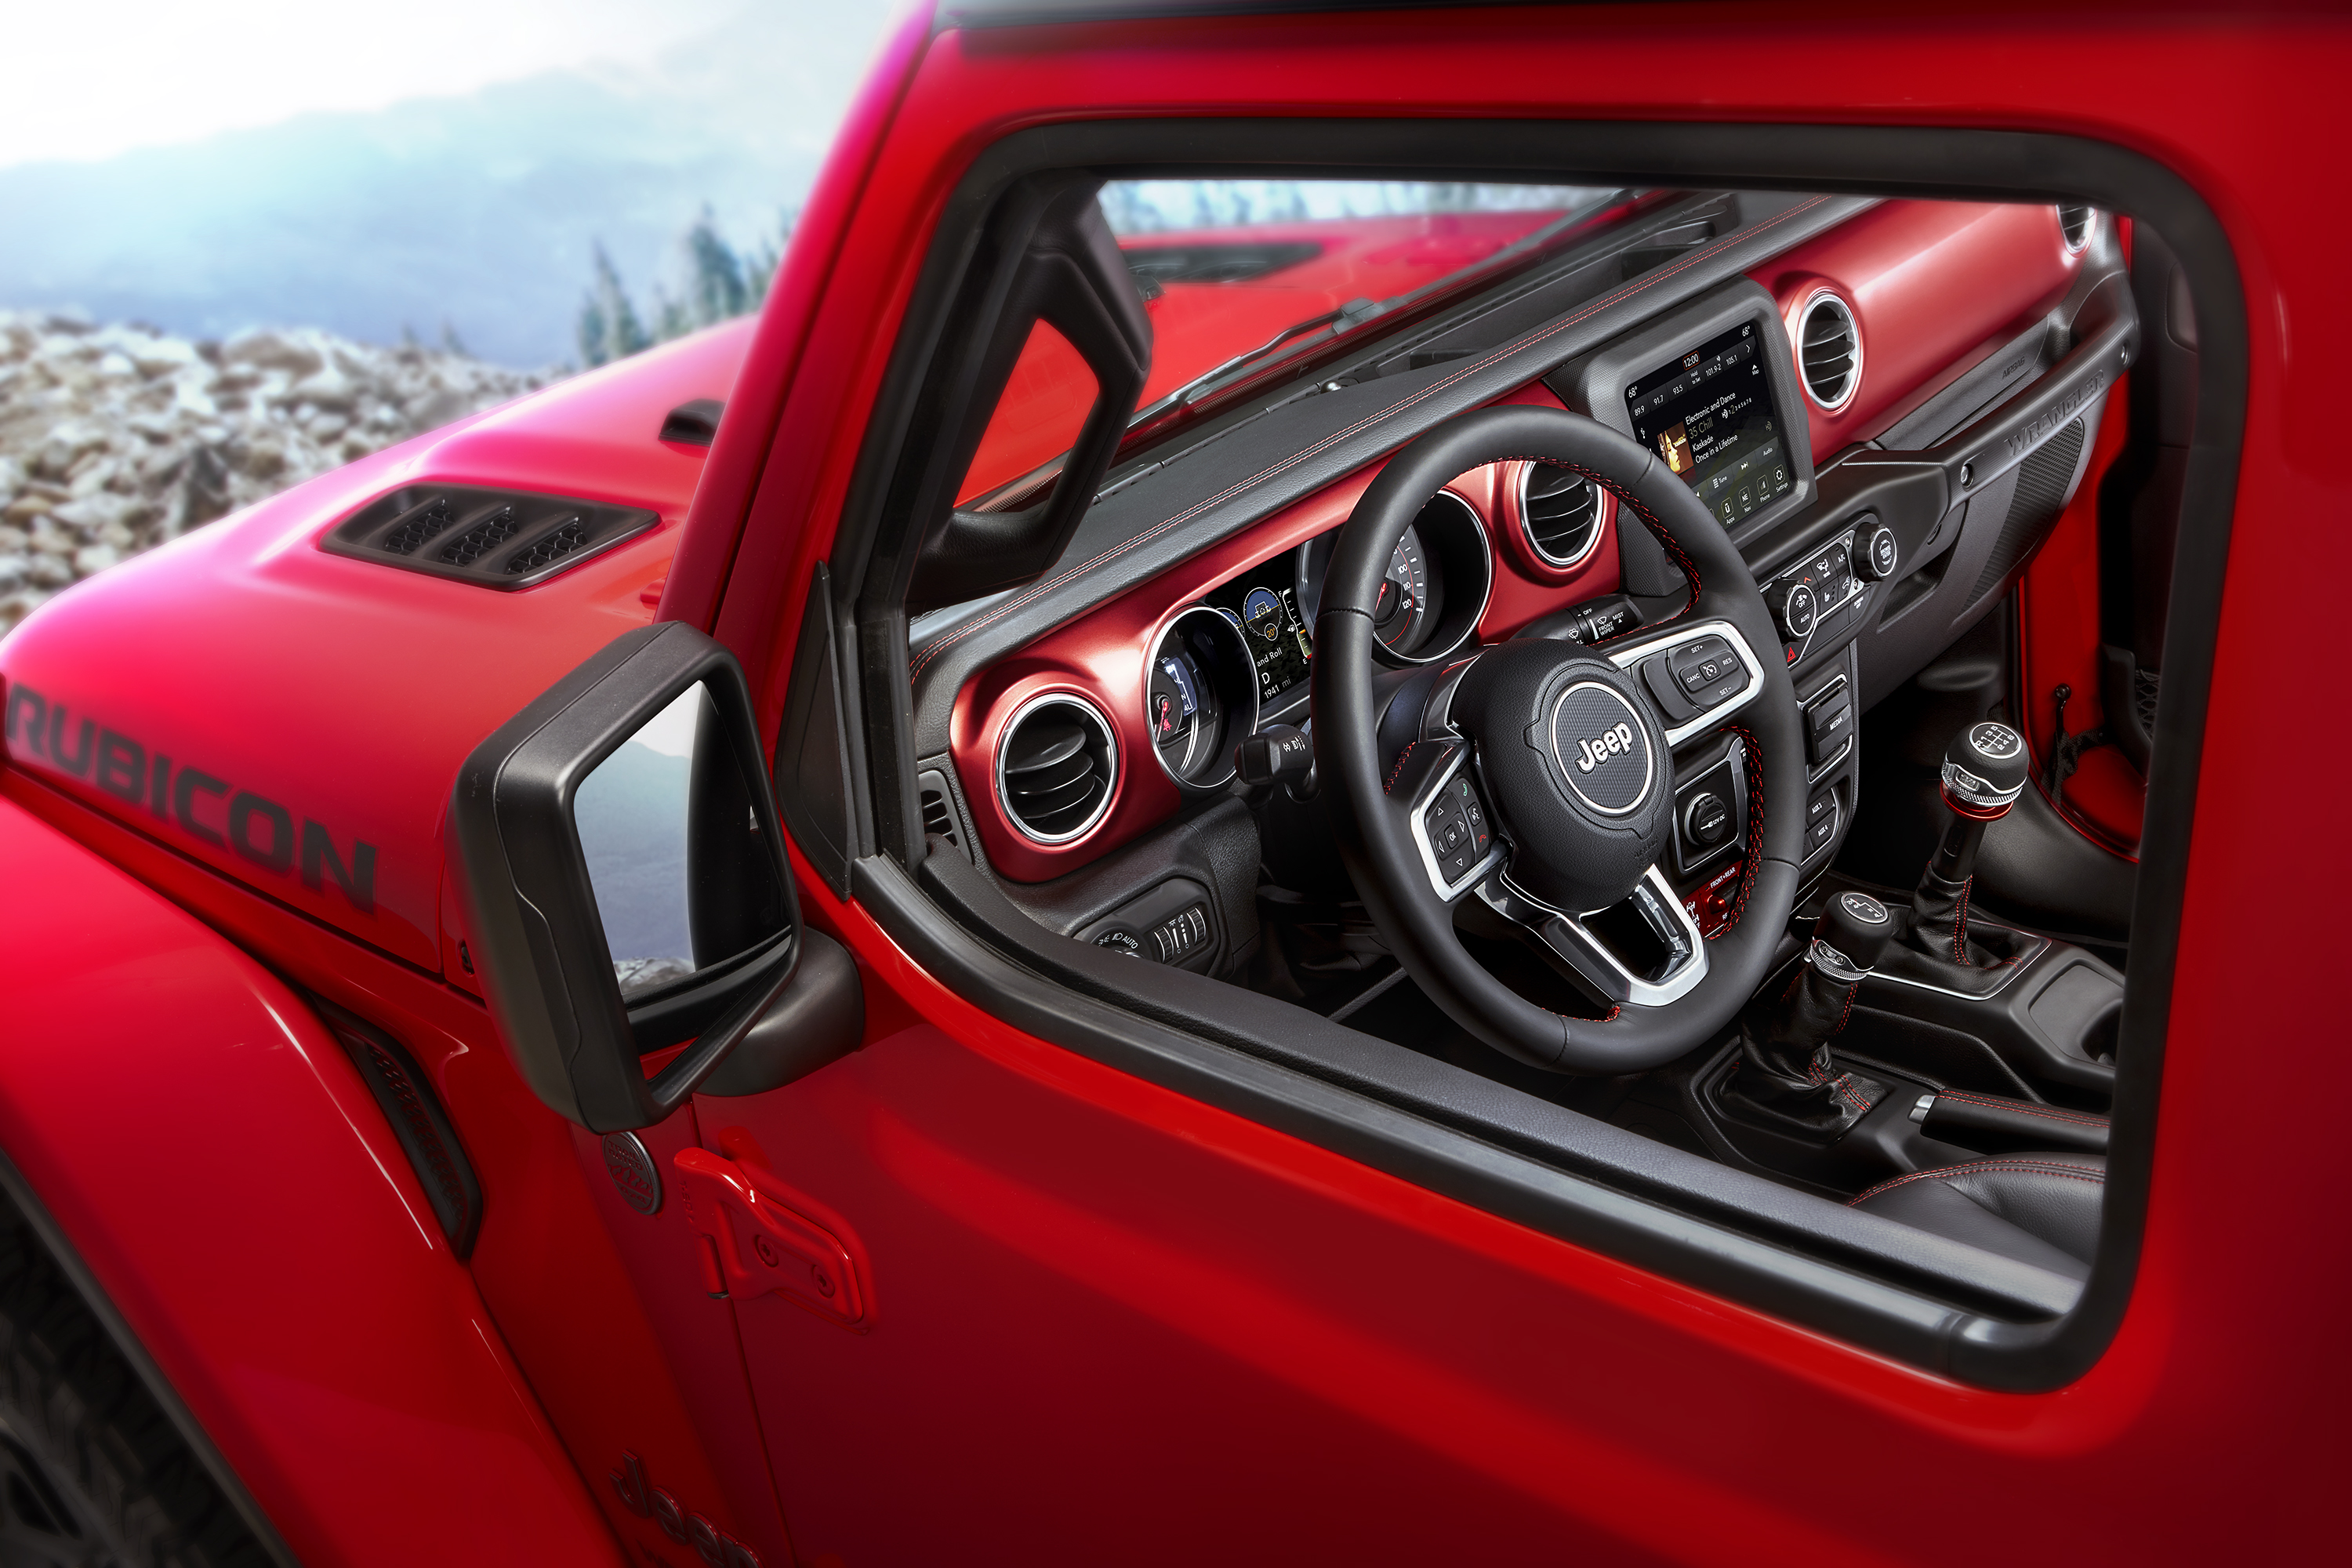 2018 Jeep Wrangler 100 Pounds Lighter Uses Steel Aluminum Exploded View Fca Also Told Us That The Frame Is Than Prior Generation And Made Of Higher Strength Which Should Make For More Interesting